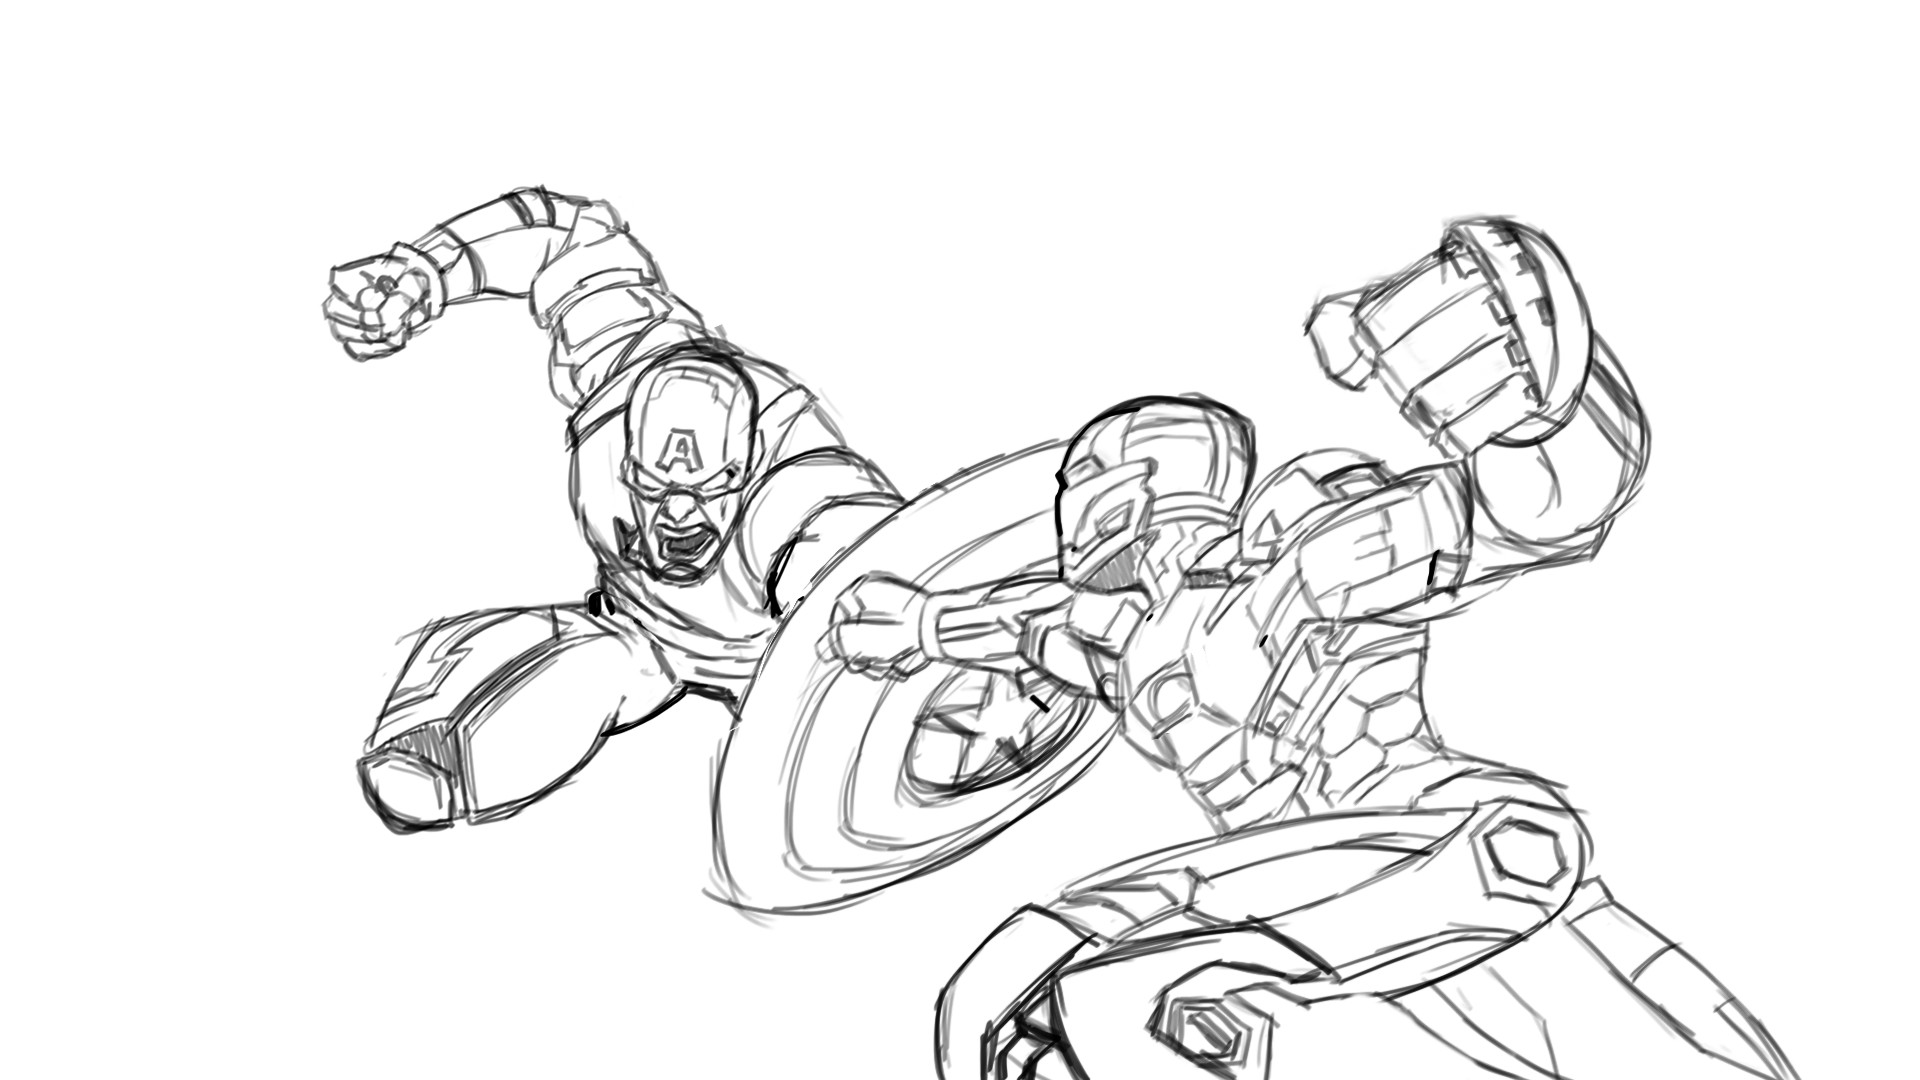 how to draw ironman step by step ironman drawing at getdrawings free download step to by step draw ironman how